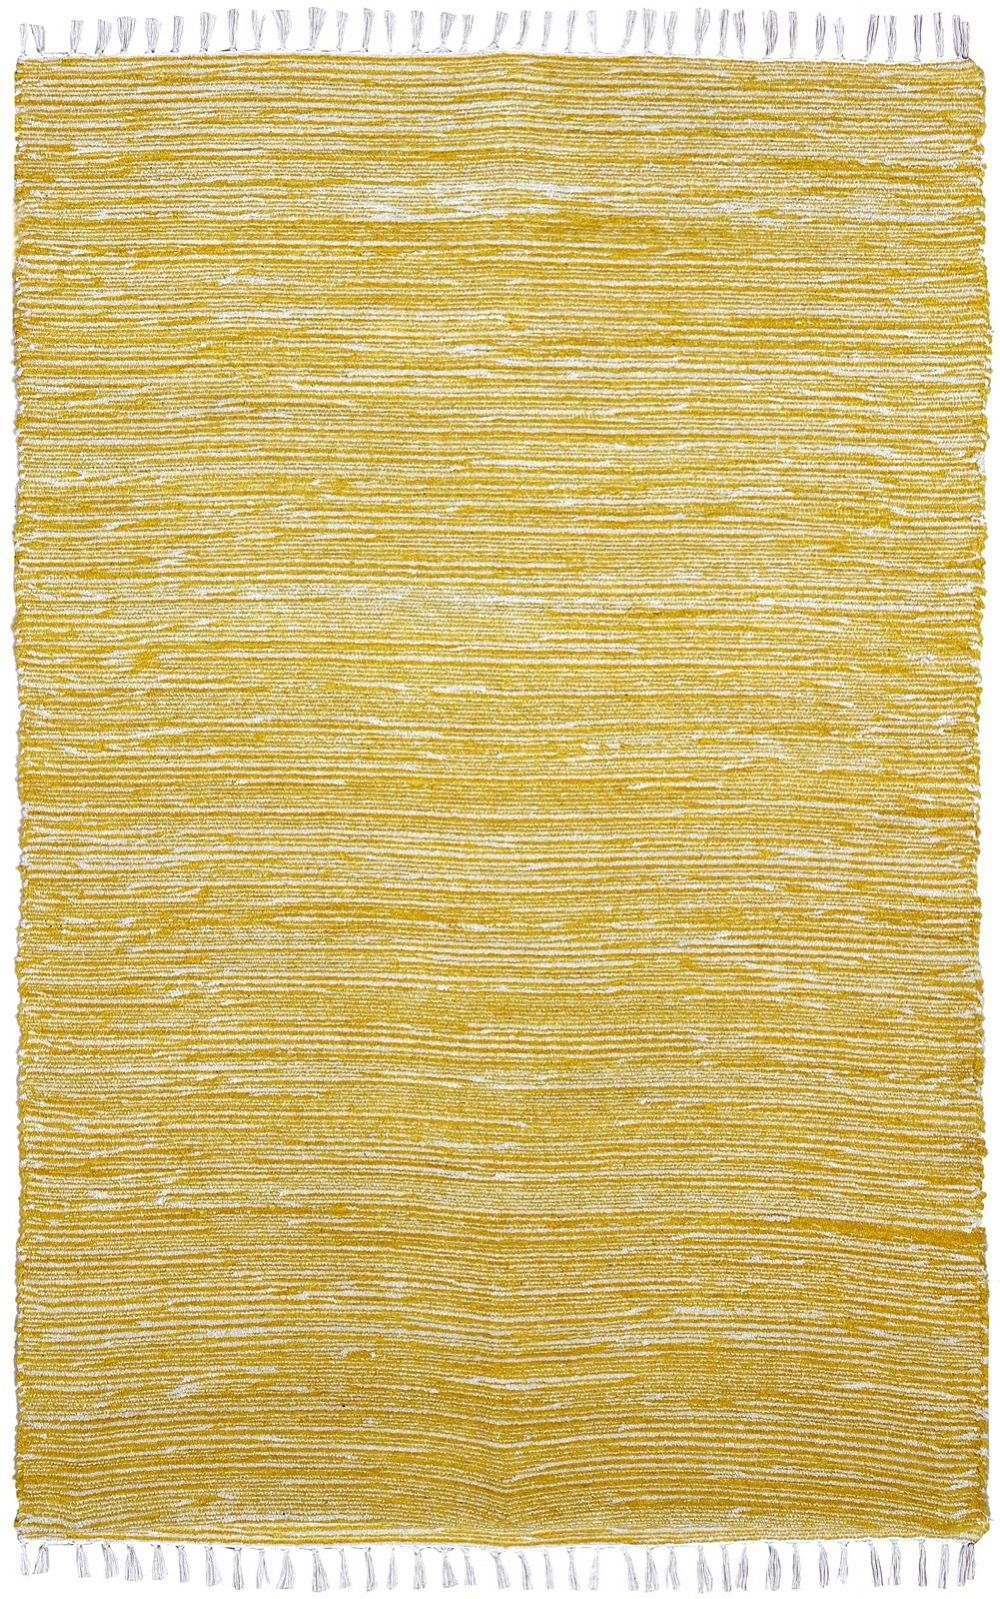 st croix trading complex solid/striped area rug collection